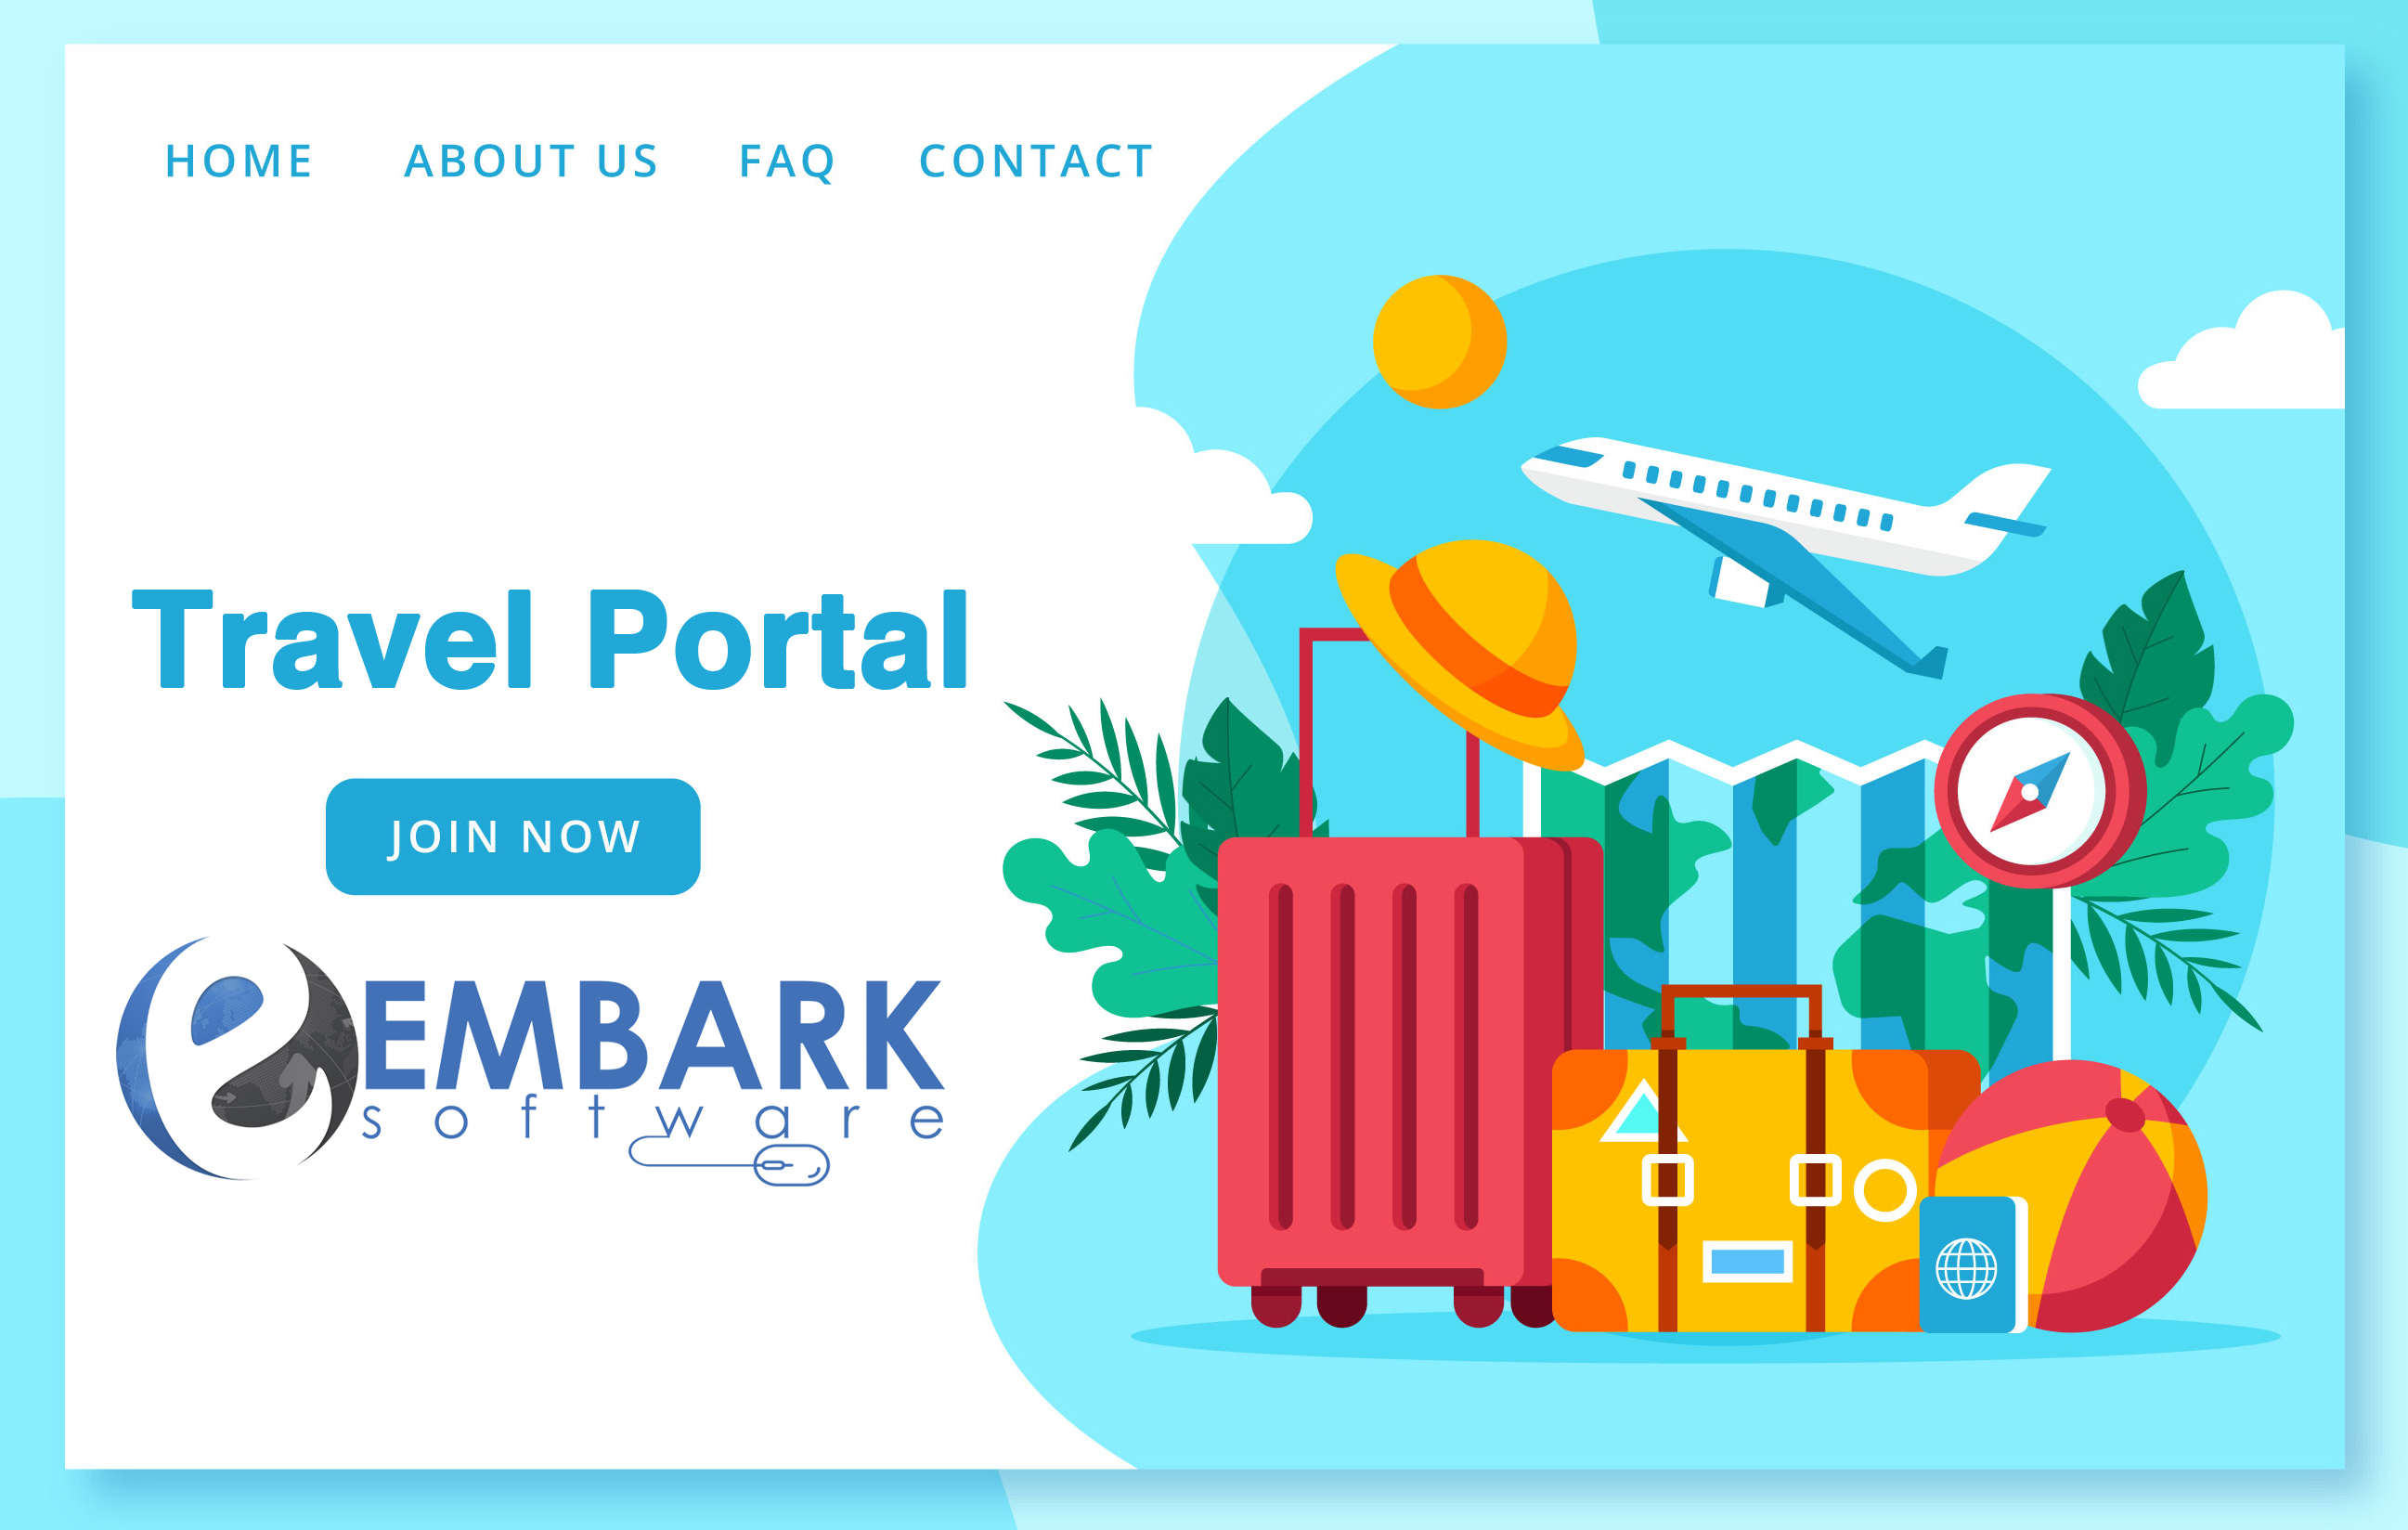 Travel Portal has revolutionized the way of planning a trip